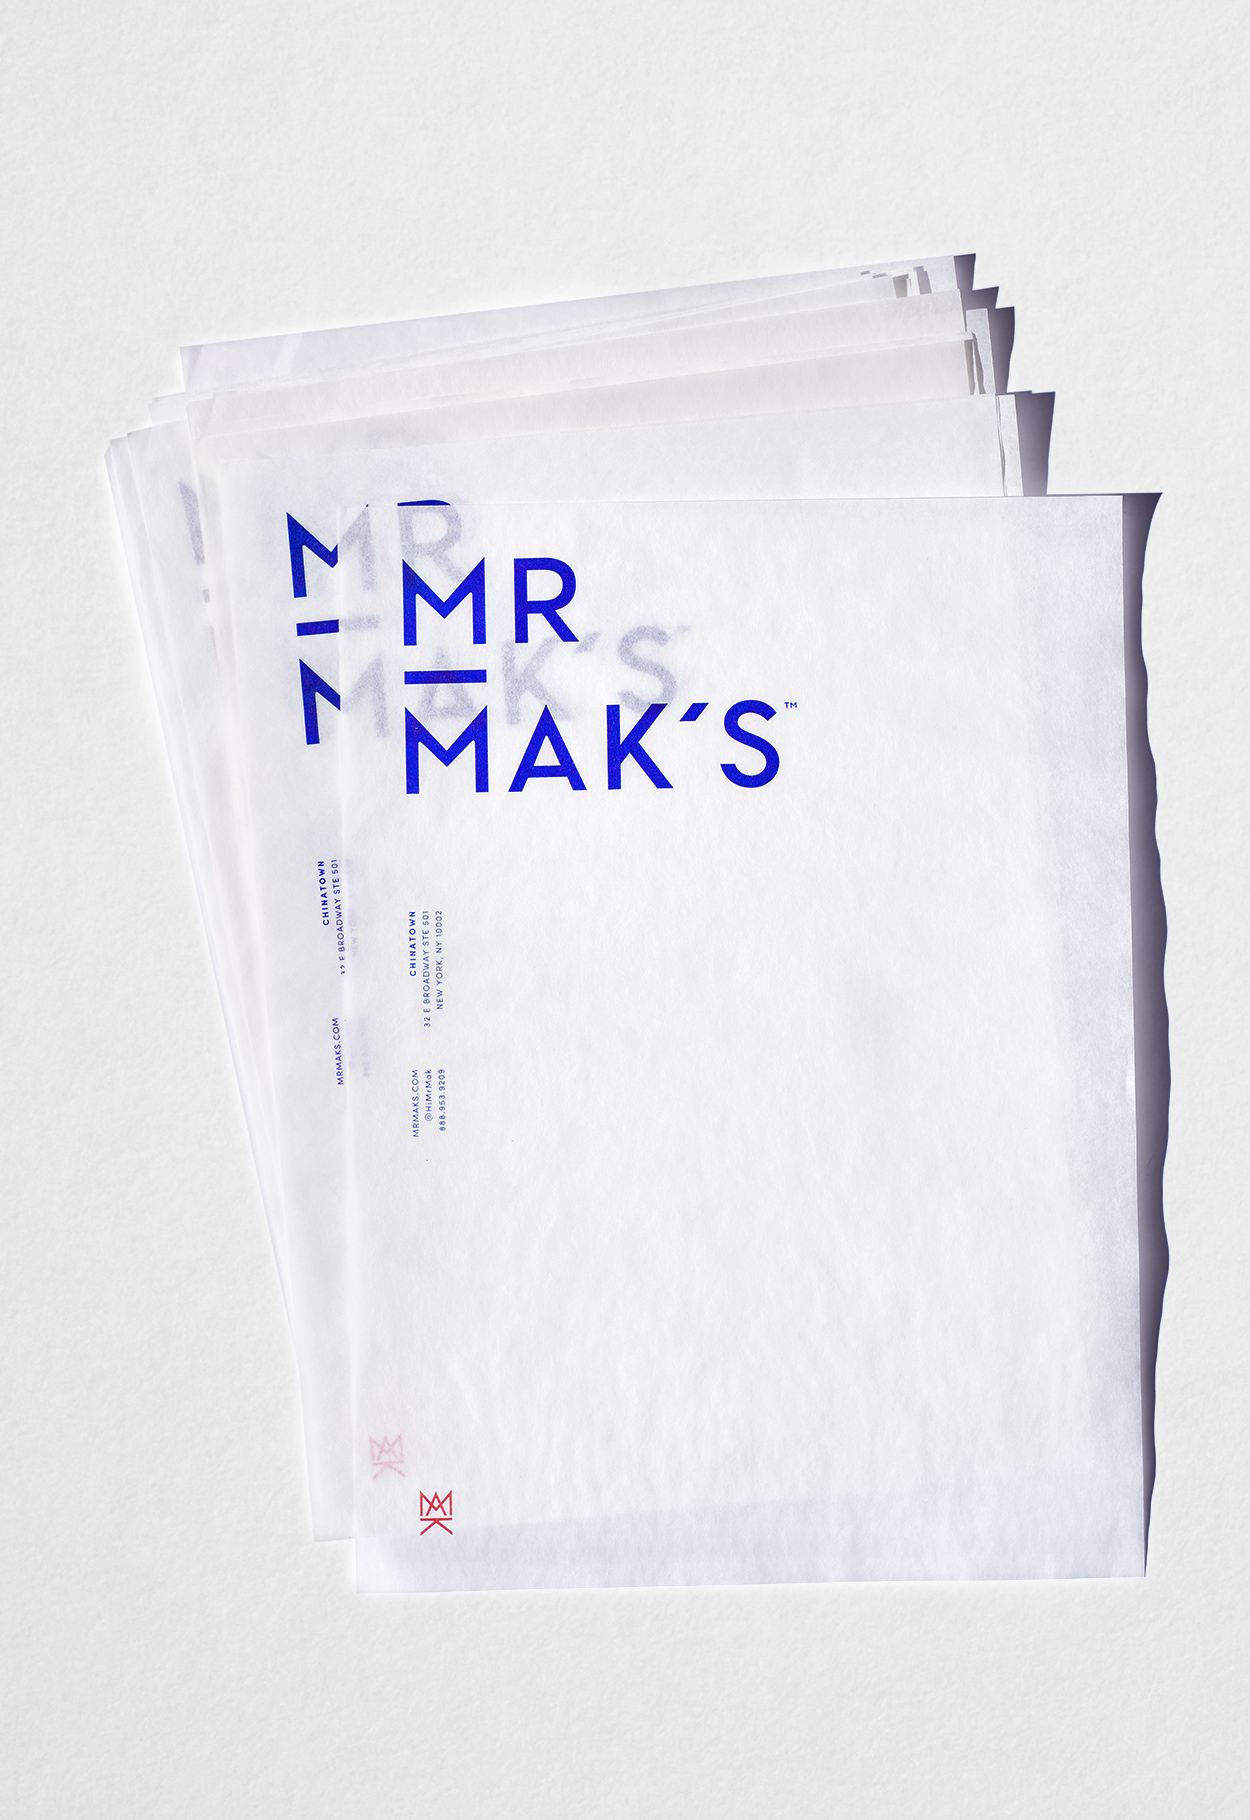 Mr. Mak's letterhead, designed by Abby Haddican.